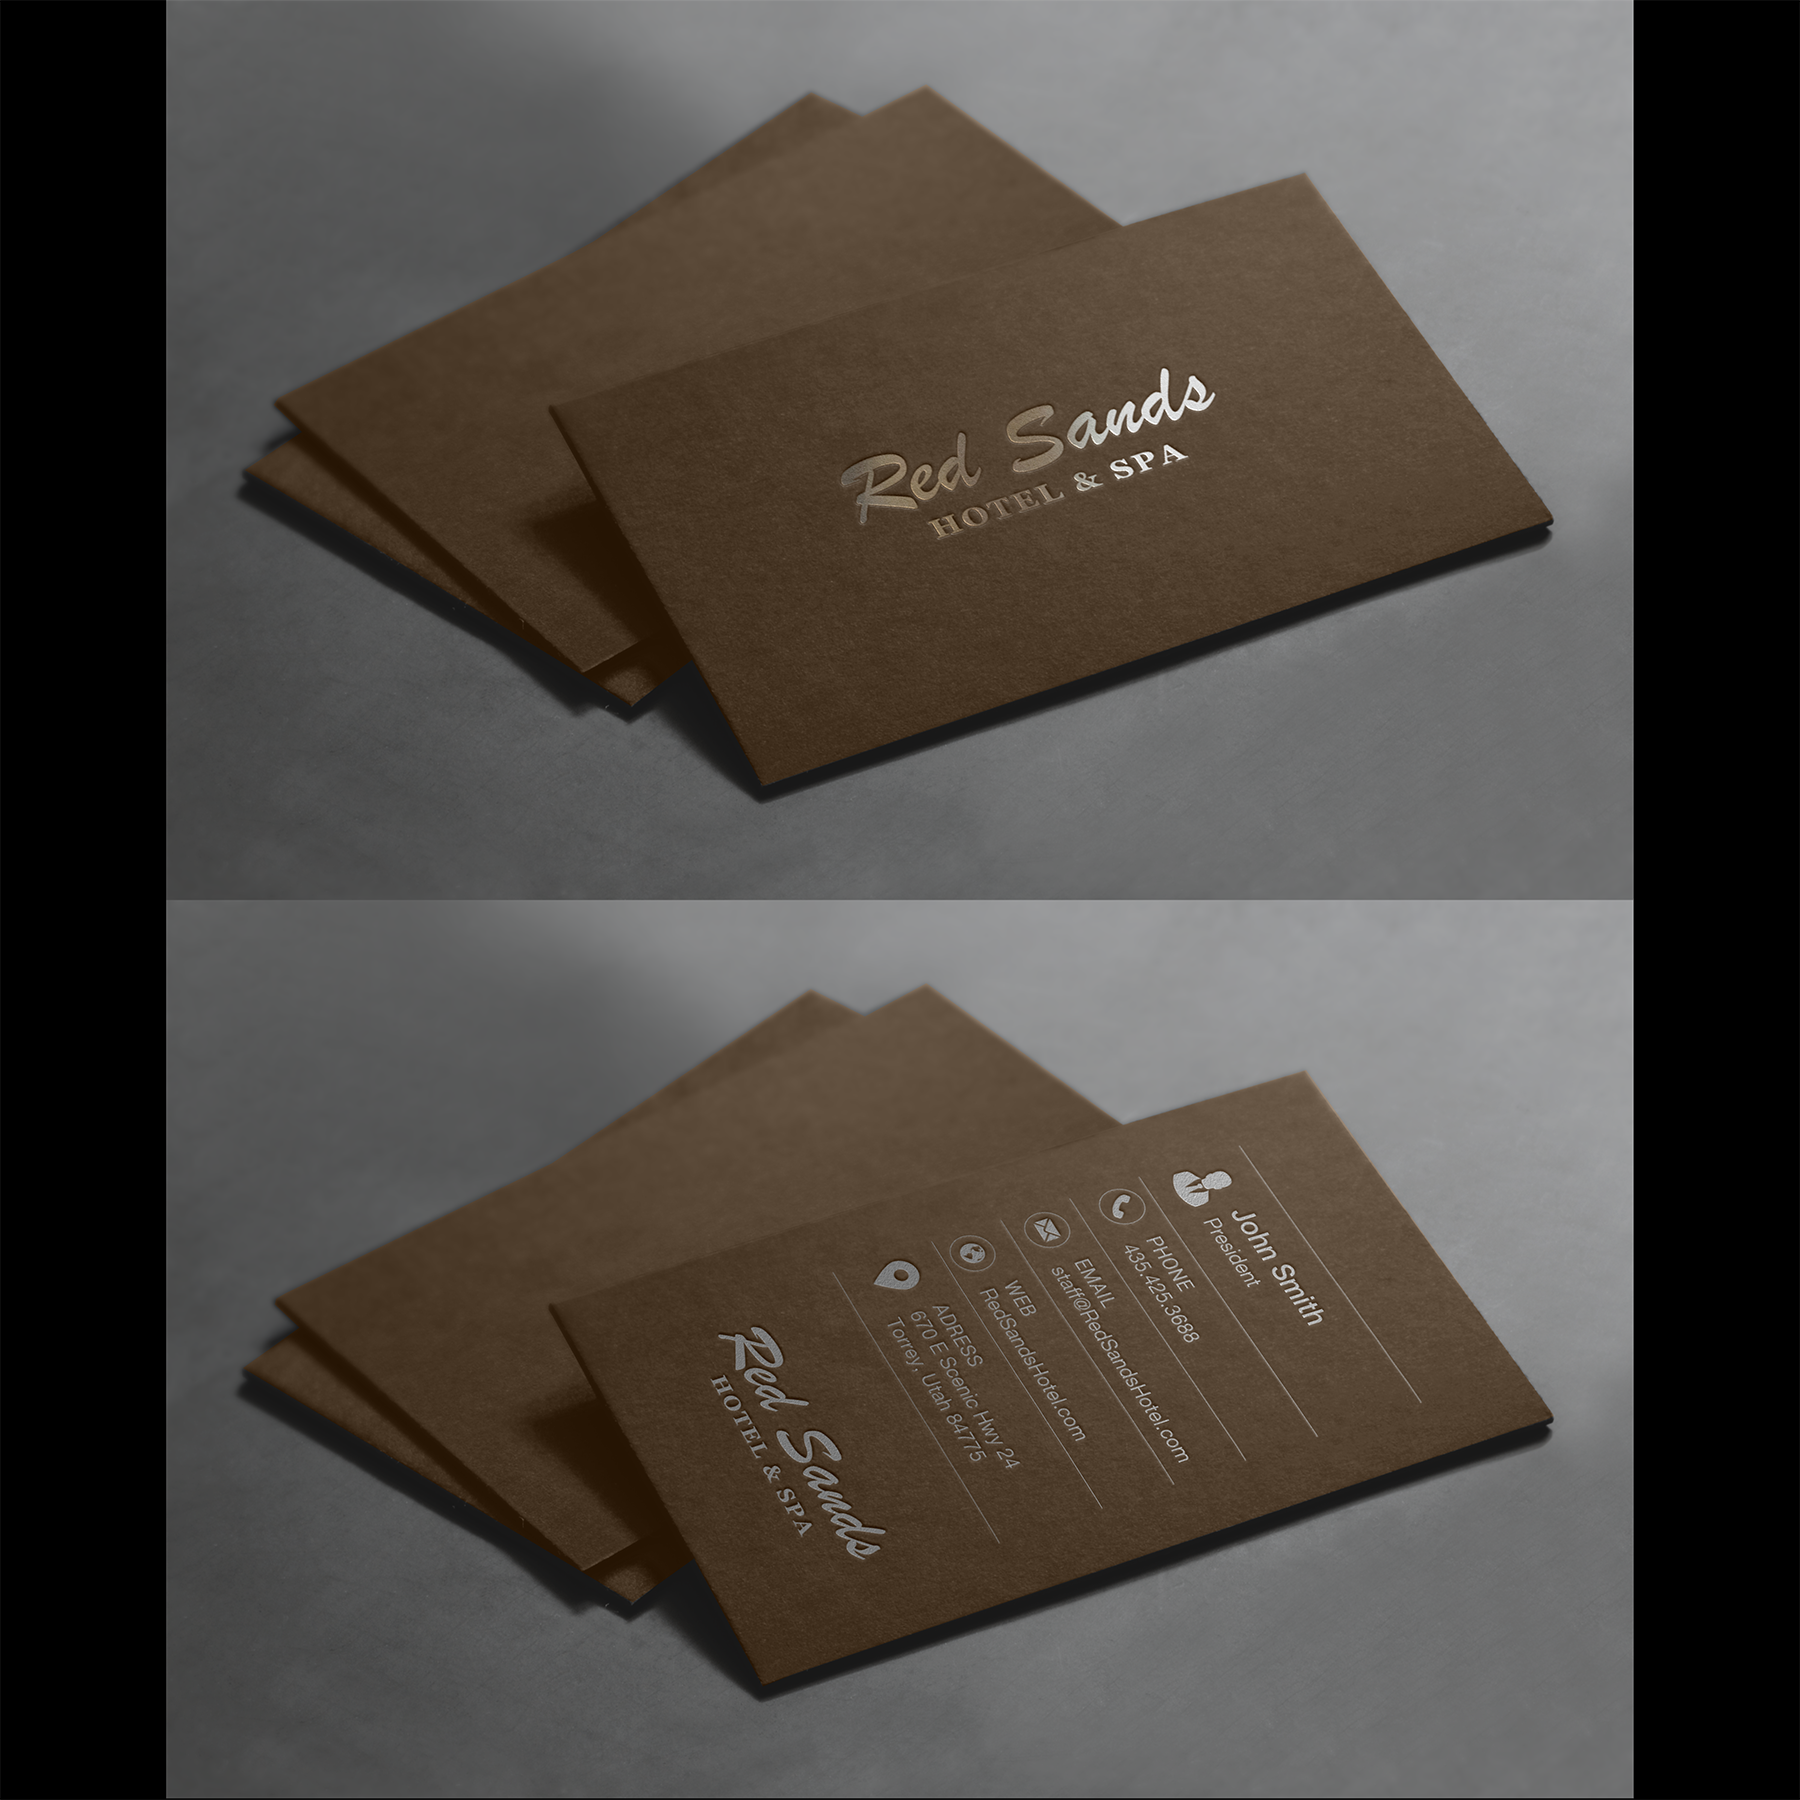 Boutique Hotel + Spa business & key card design